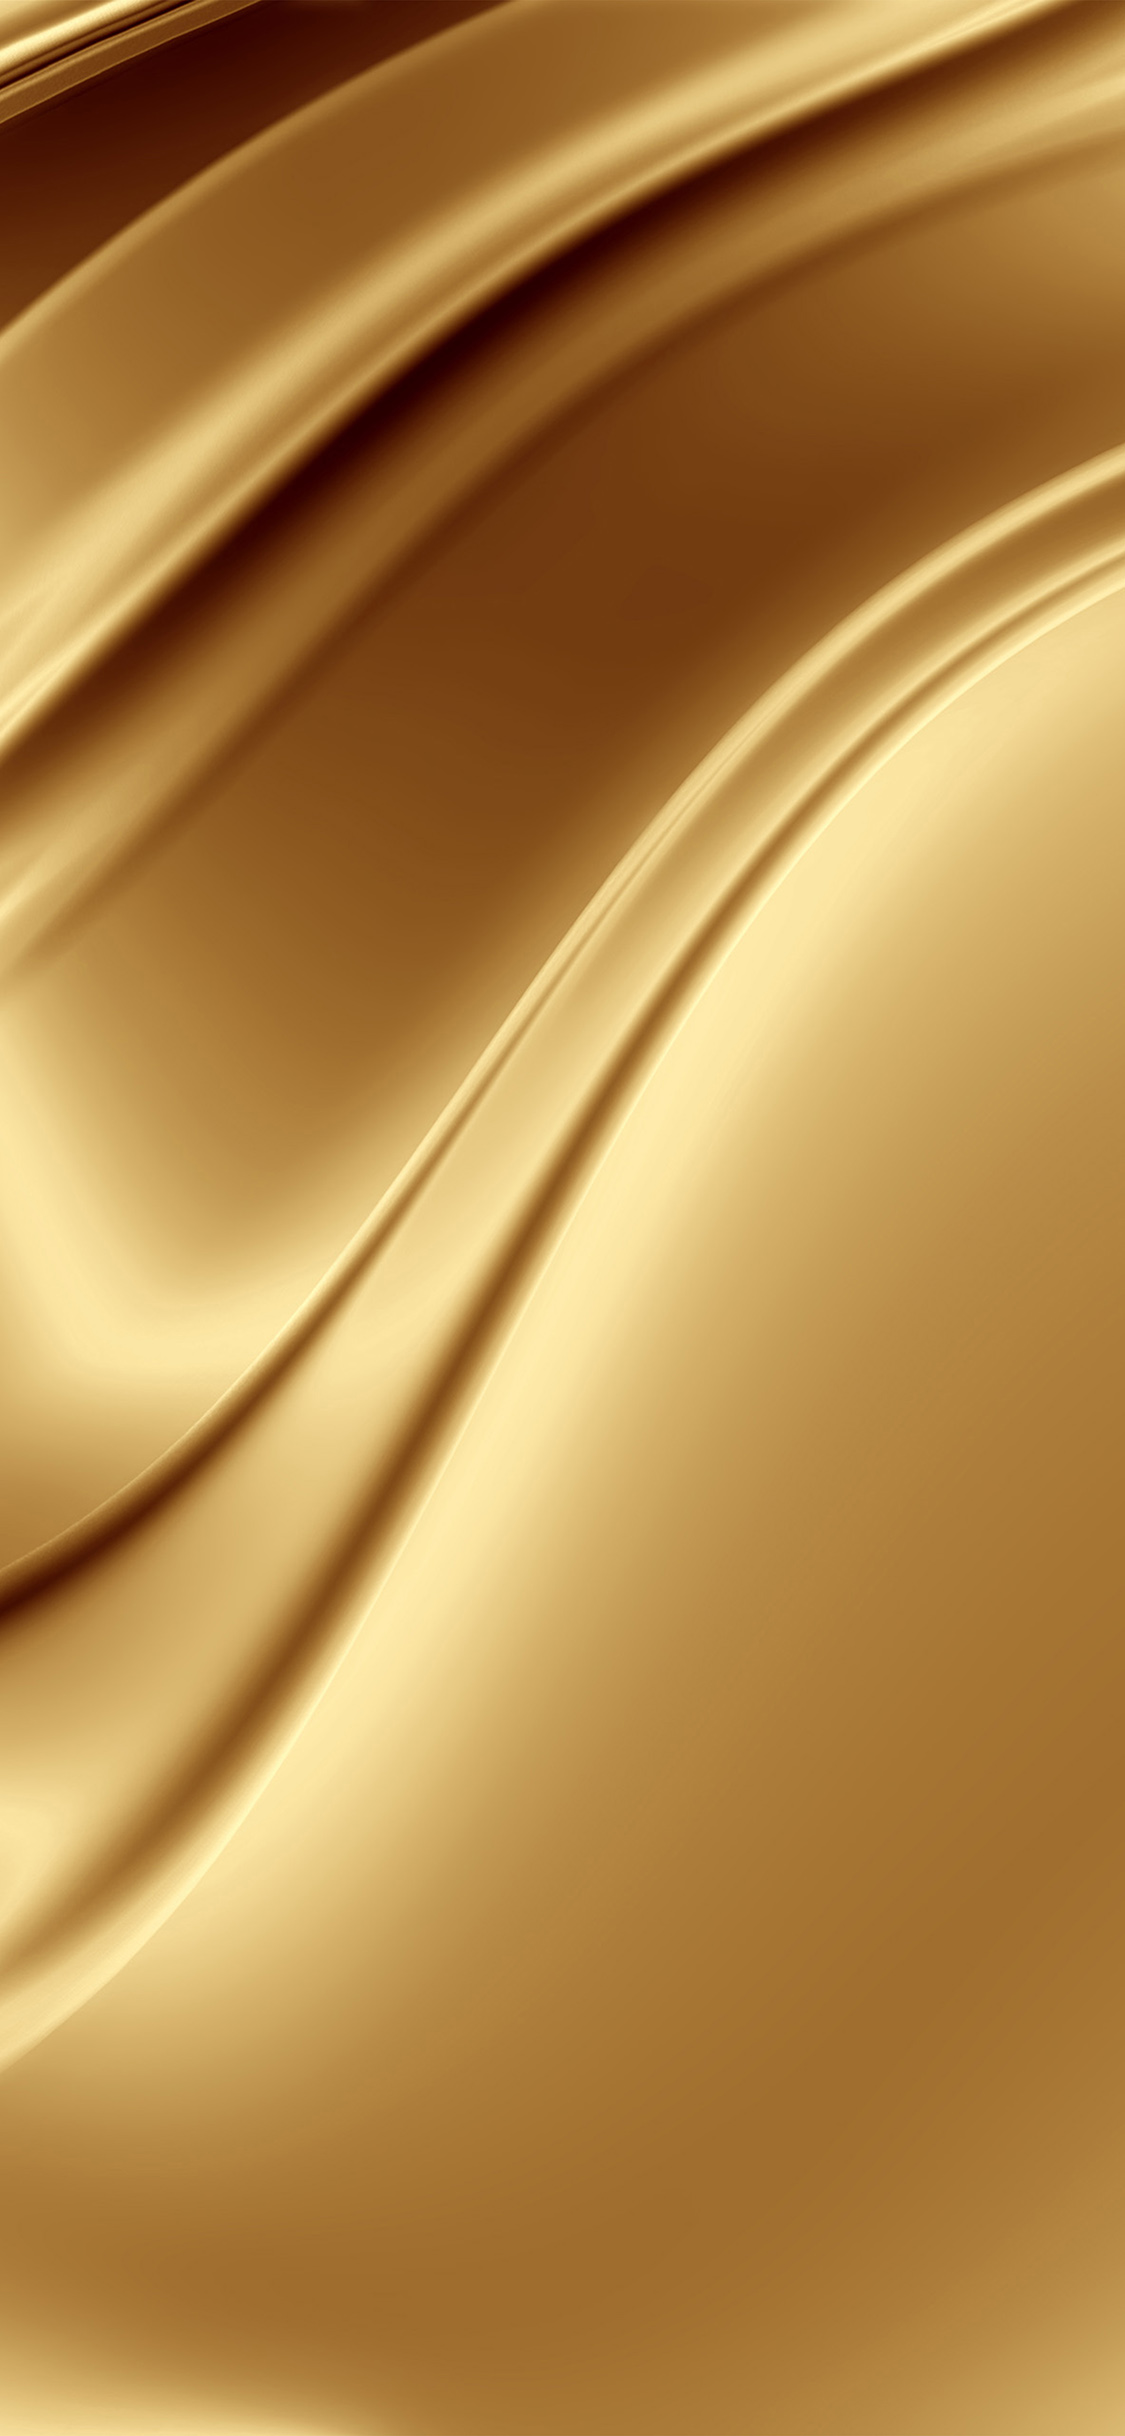 papers.co vo86 texture slik soft gold galaxy pattern 41 iphone wallpaper